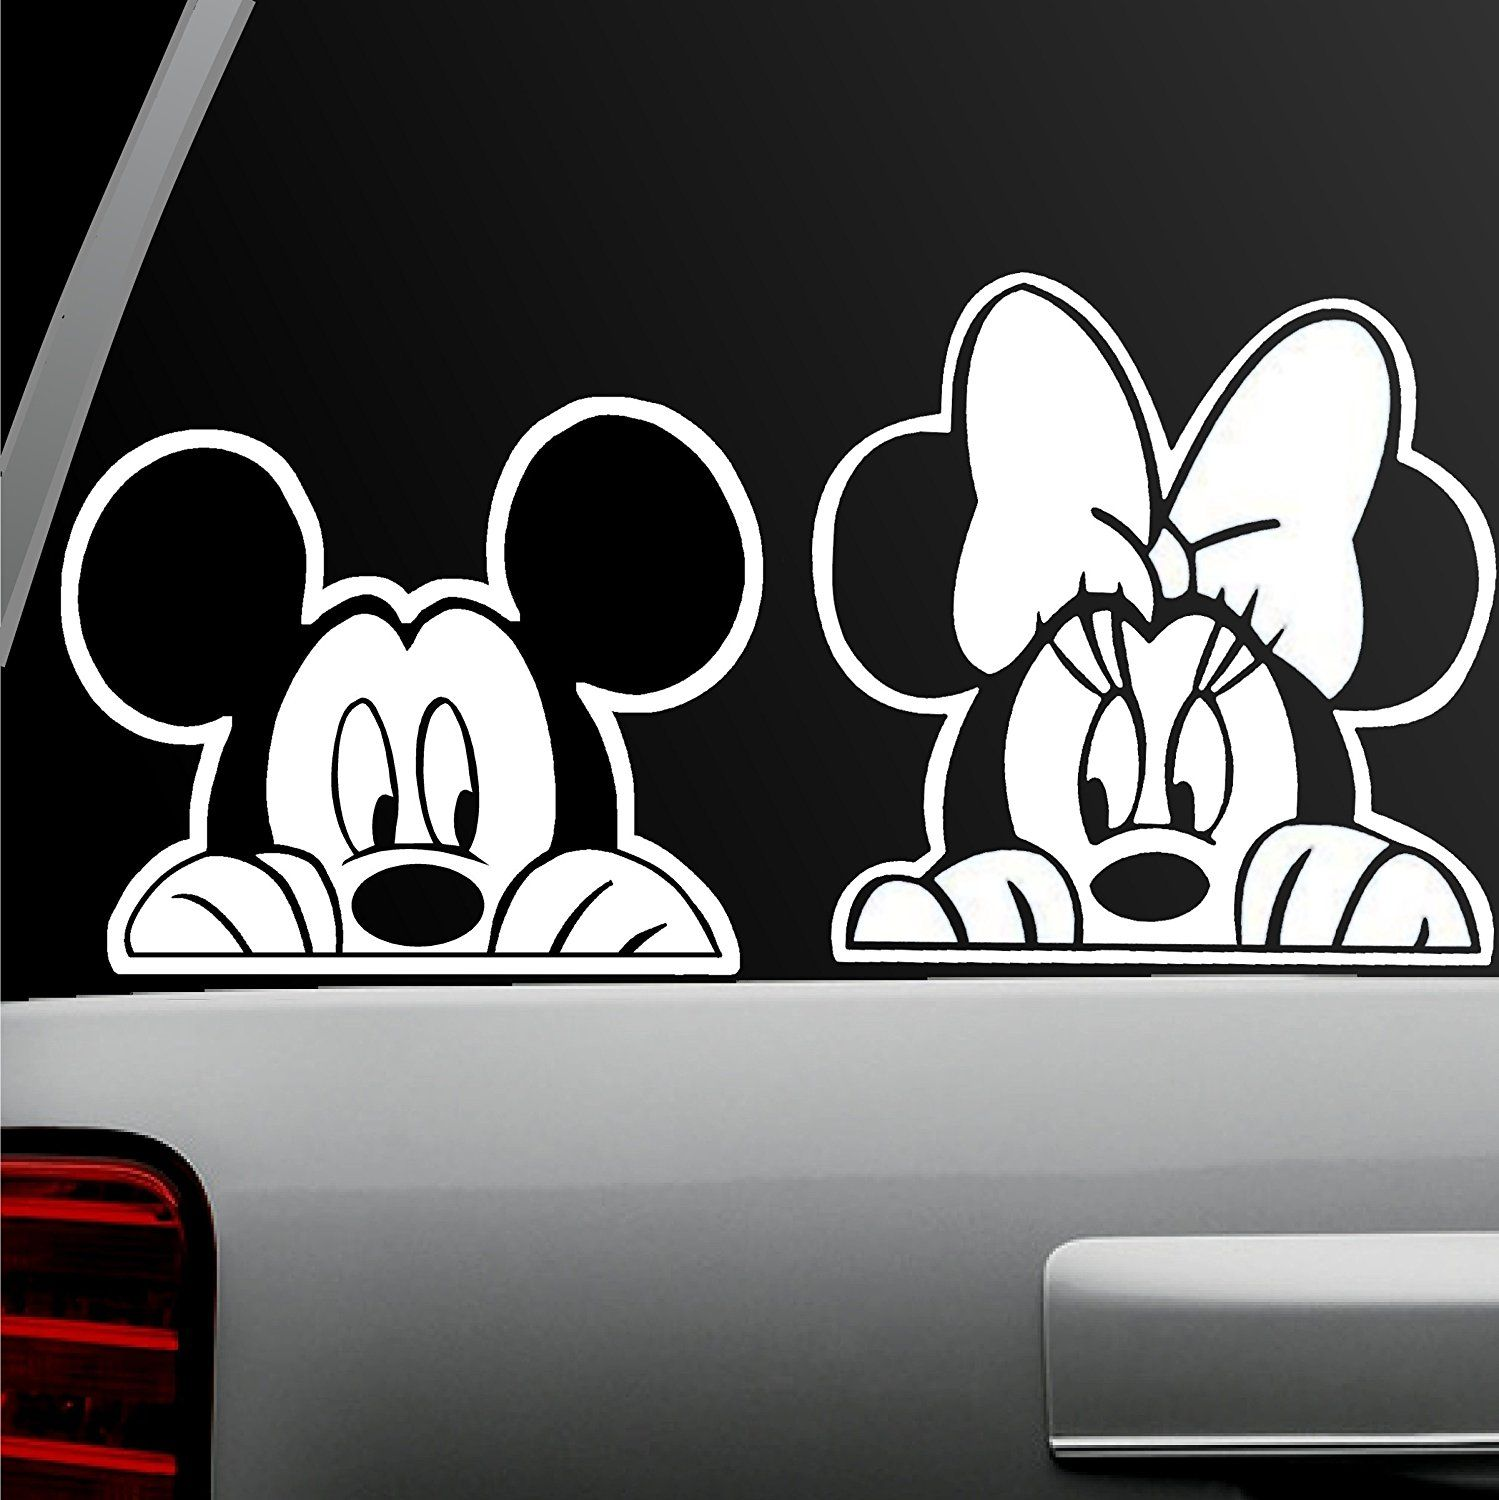 Mickey minnie mouse window clings ❤ ❤ ❤ ❤️